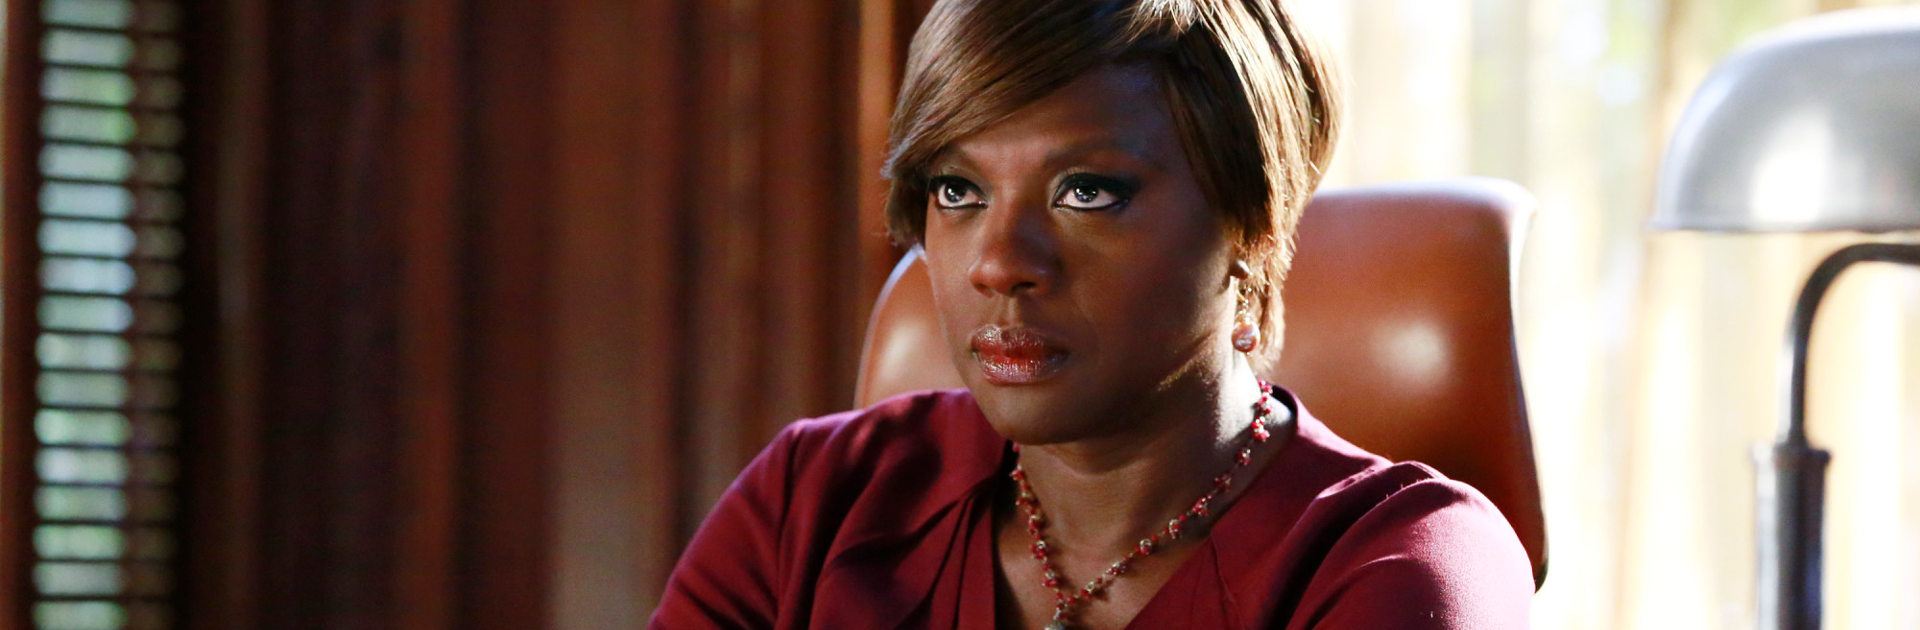 how to get away with murder - migliori serie tv sugli avvocati